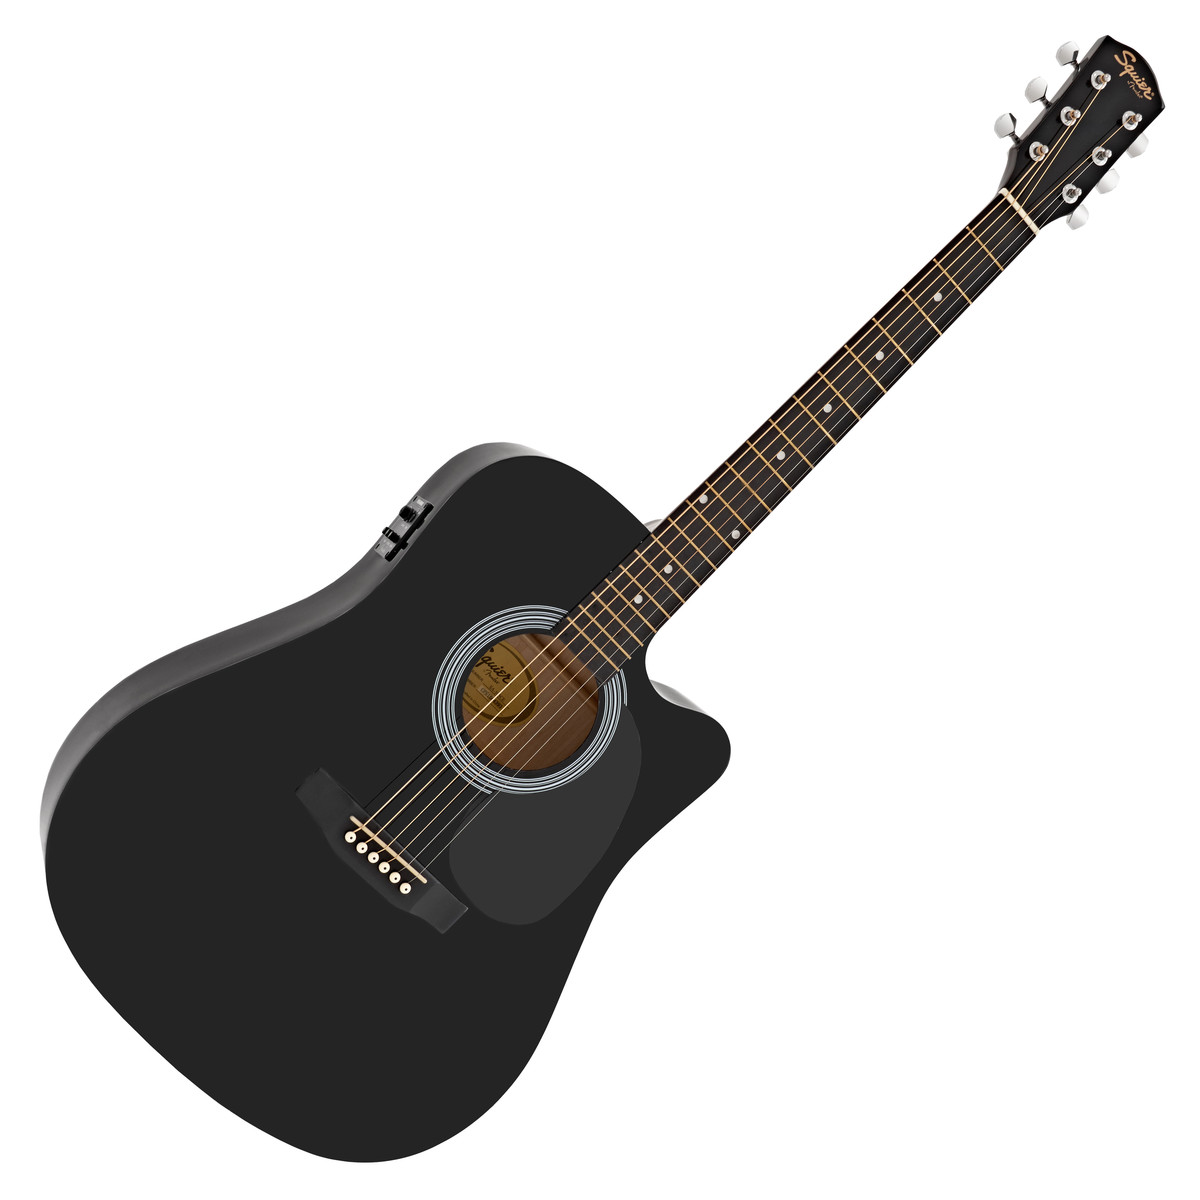 squier by fender sa 105ce electro acoustic guitar black b stock at gear4music. Black Bedroom Furniture Sets. Home Design Ideas